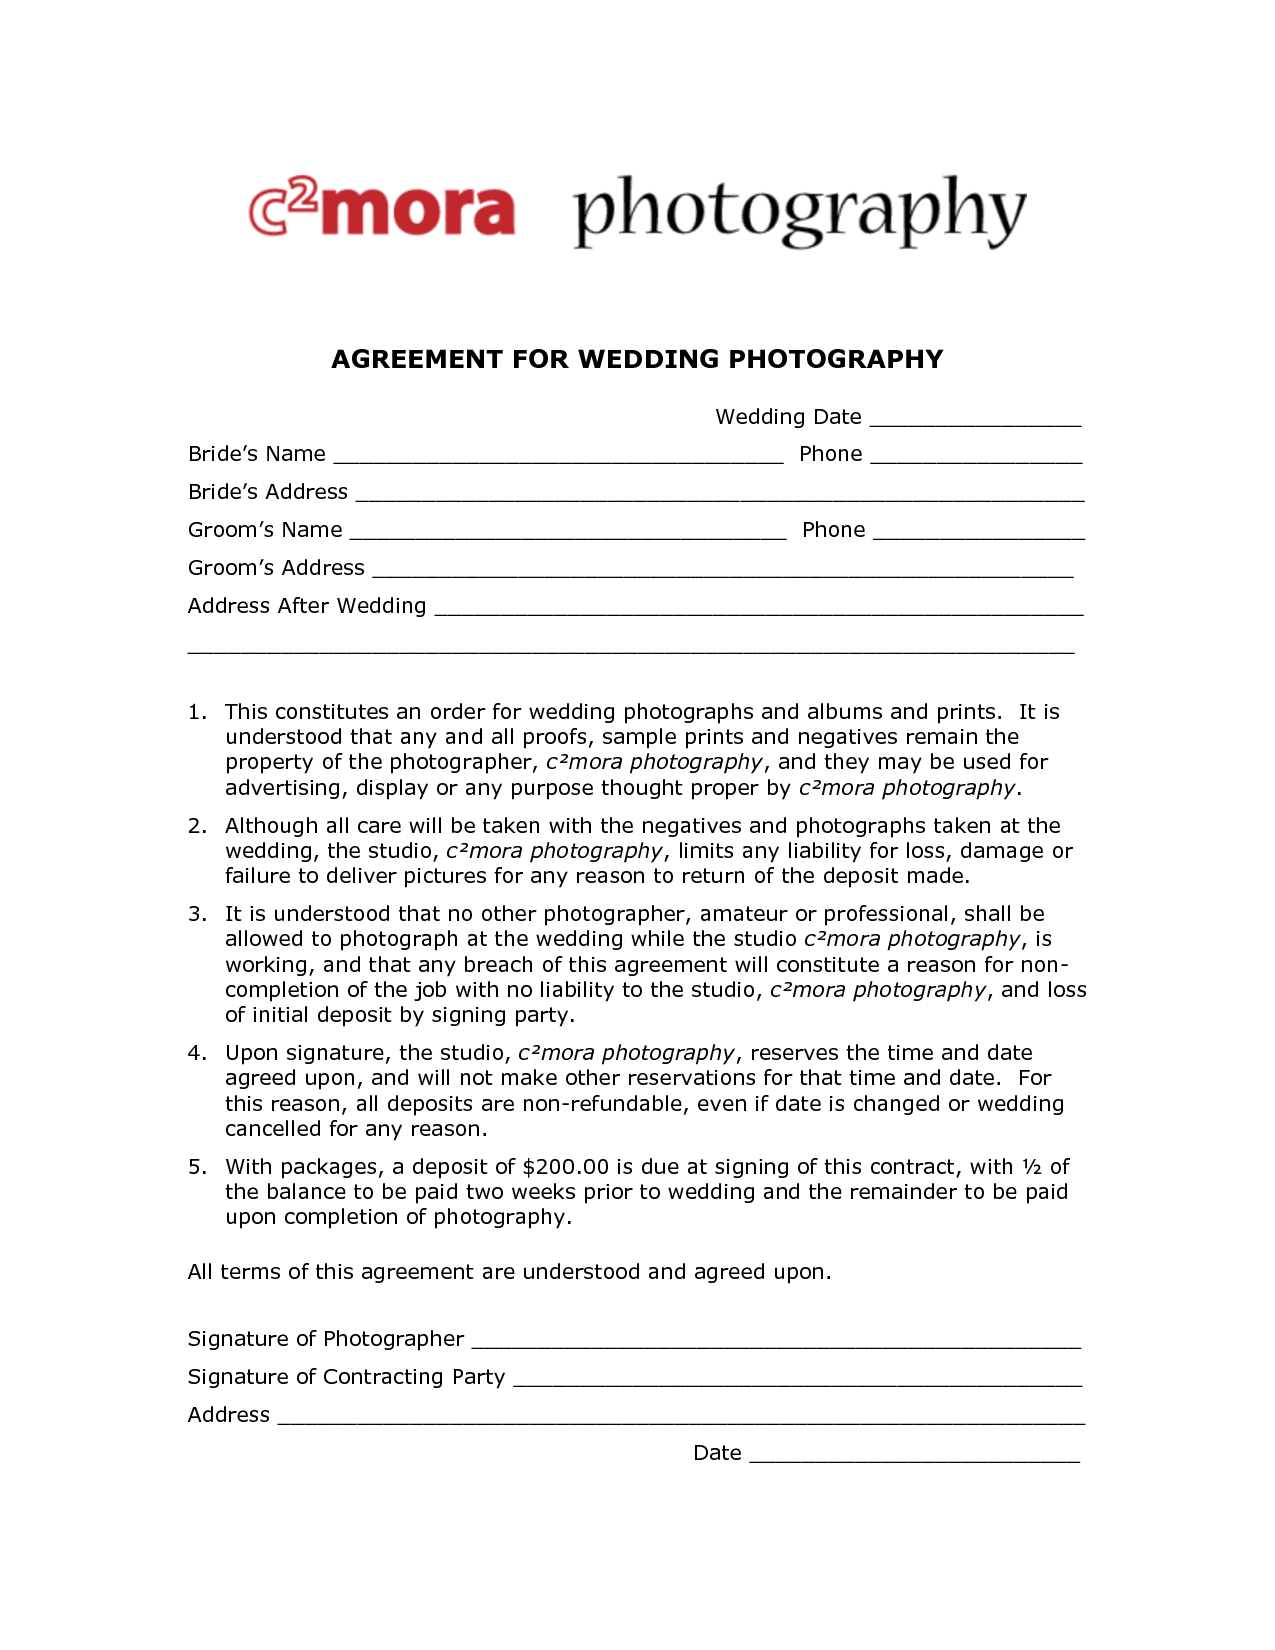 Wedding Photography Contracts - Free Printable Documents